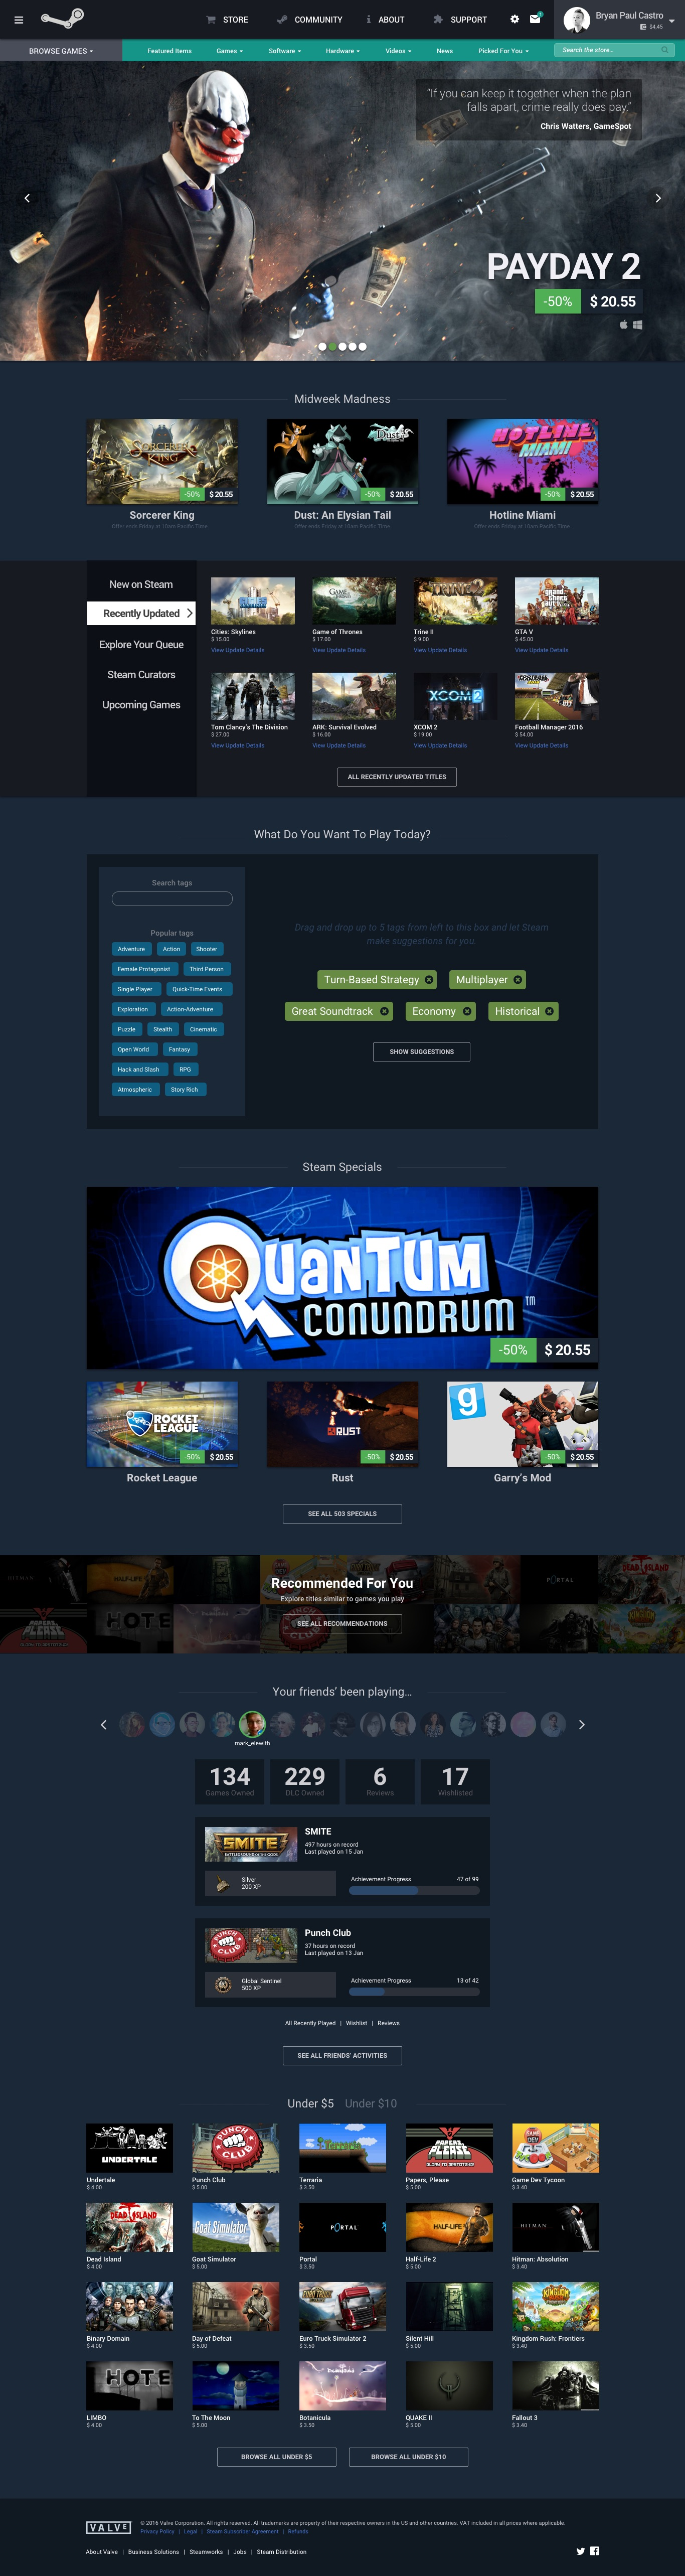 Concept for the new Steam front page